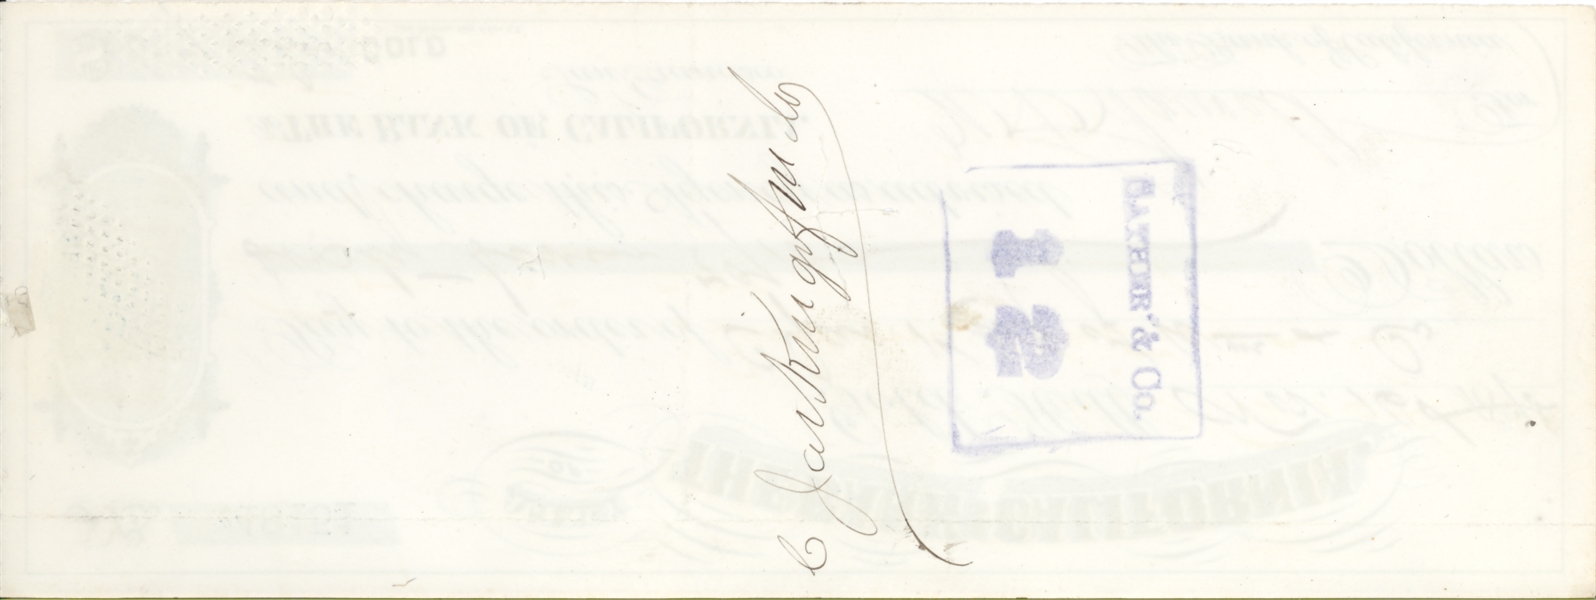 [San Francisco, California] James King of William signed check